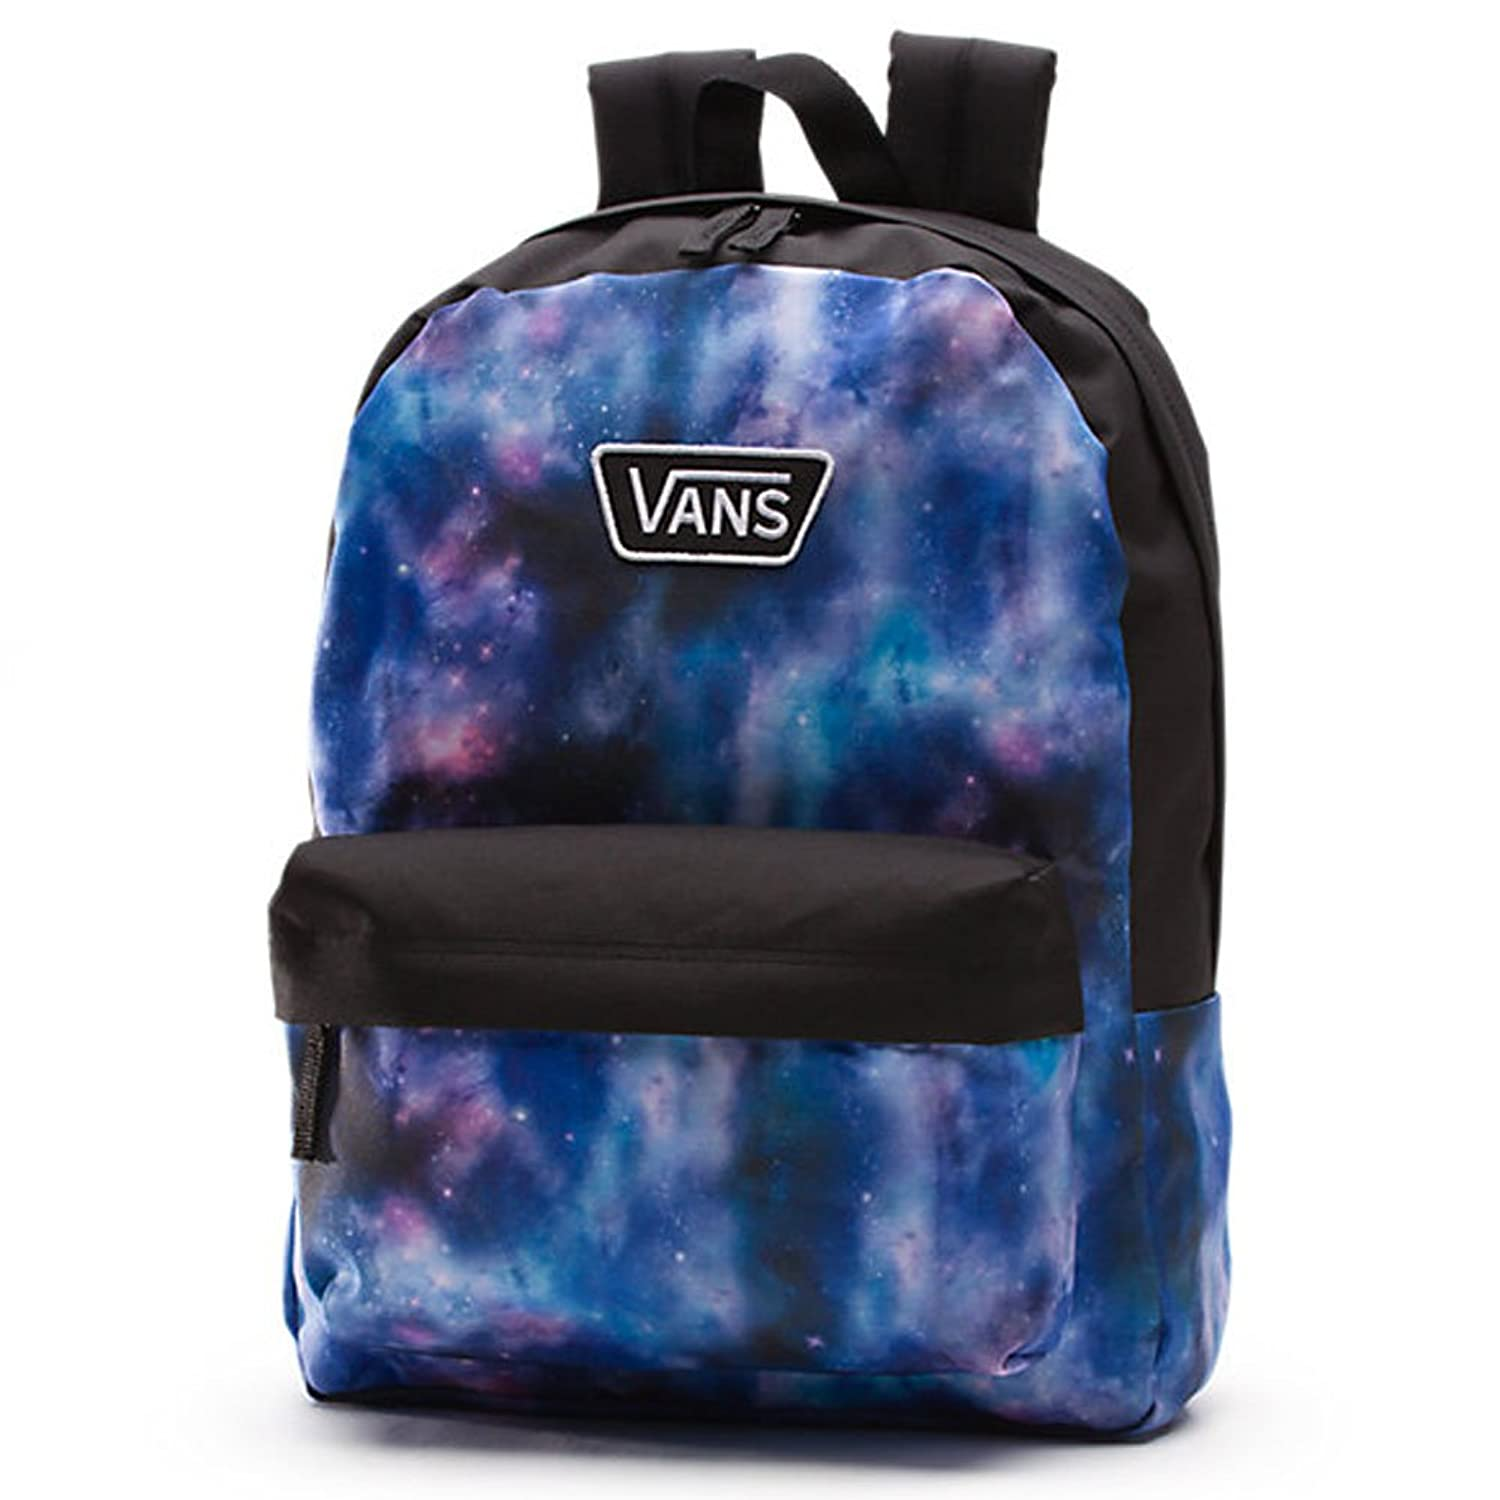 Amazon.com  Vans Realm II RTL Backpack Galaxy Nebula Black Blue Purple  School Bag  Shoes 14a54cfd1d7d4